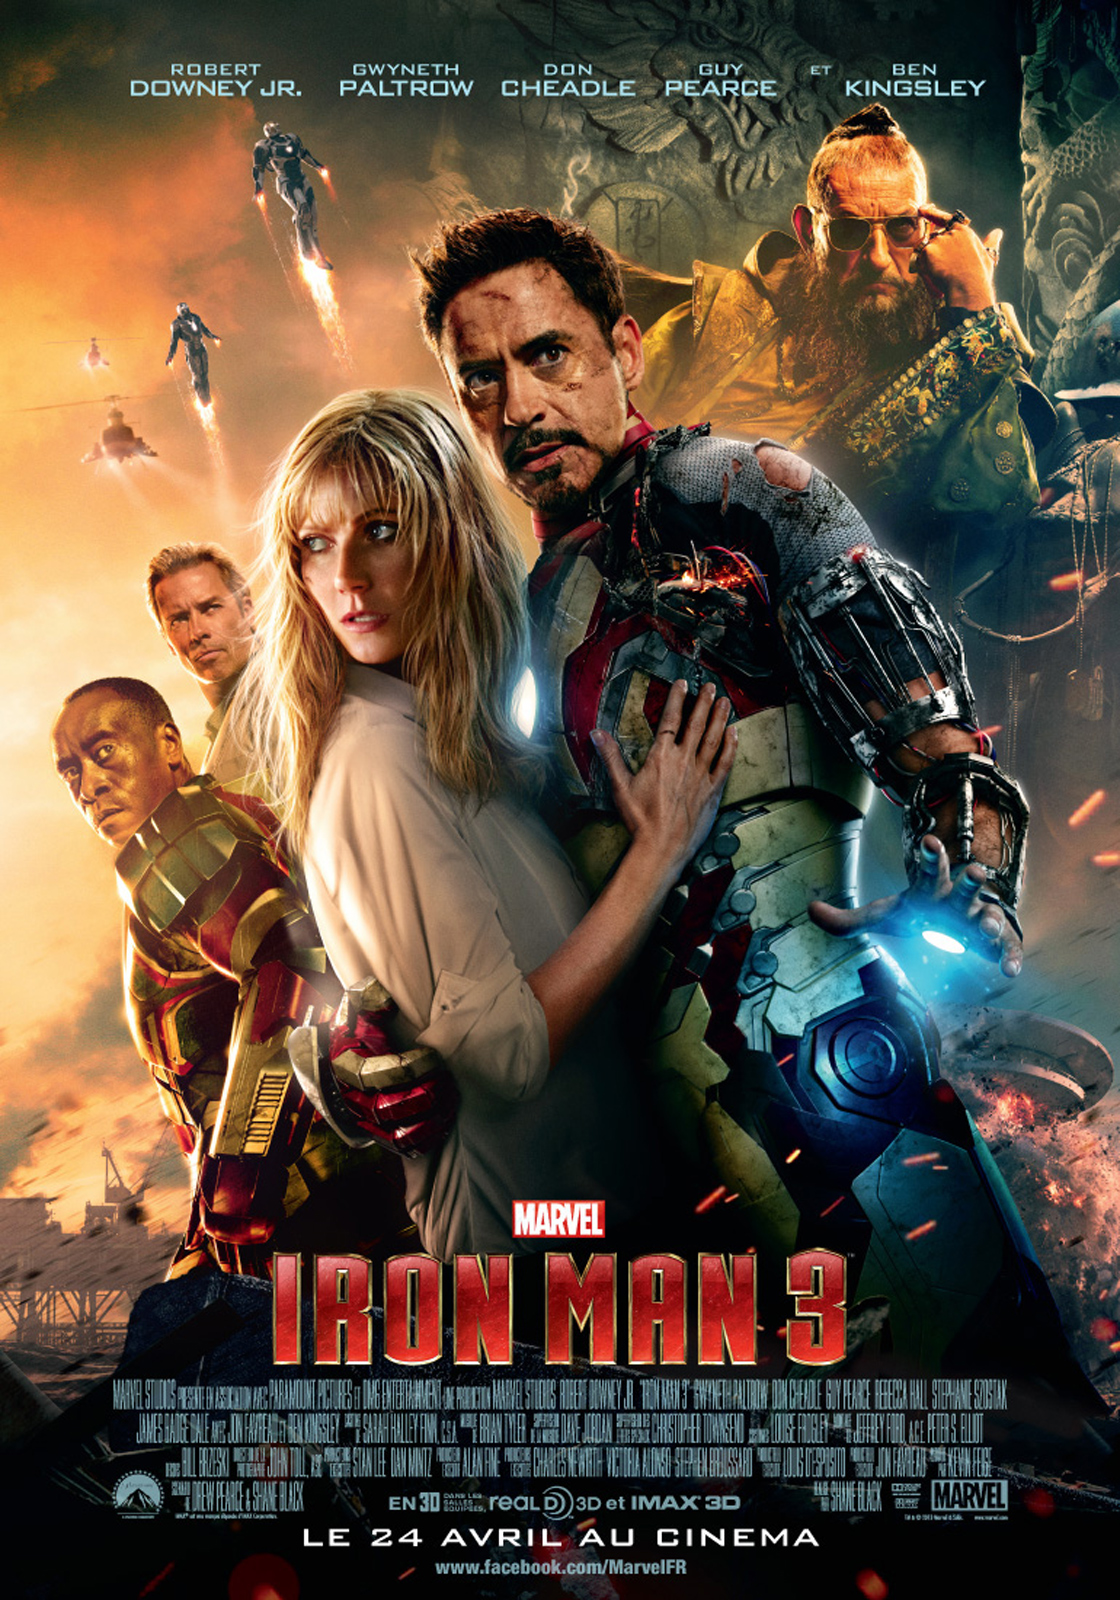 Iron Man 3 [R6 LD]